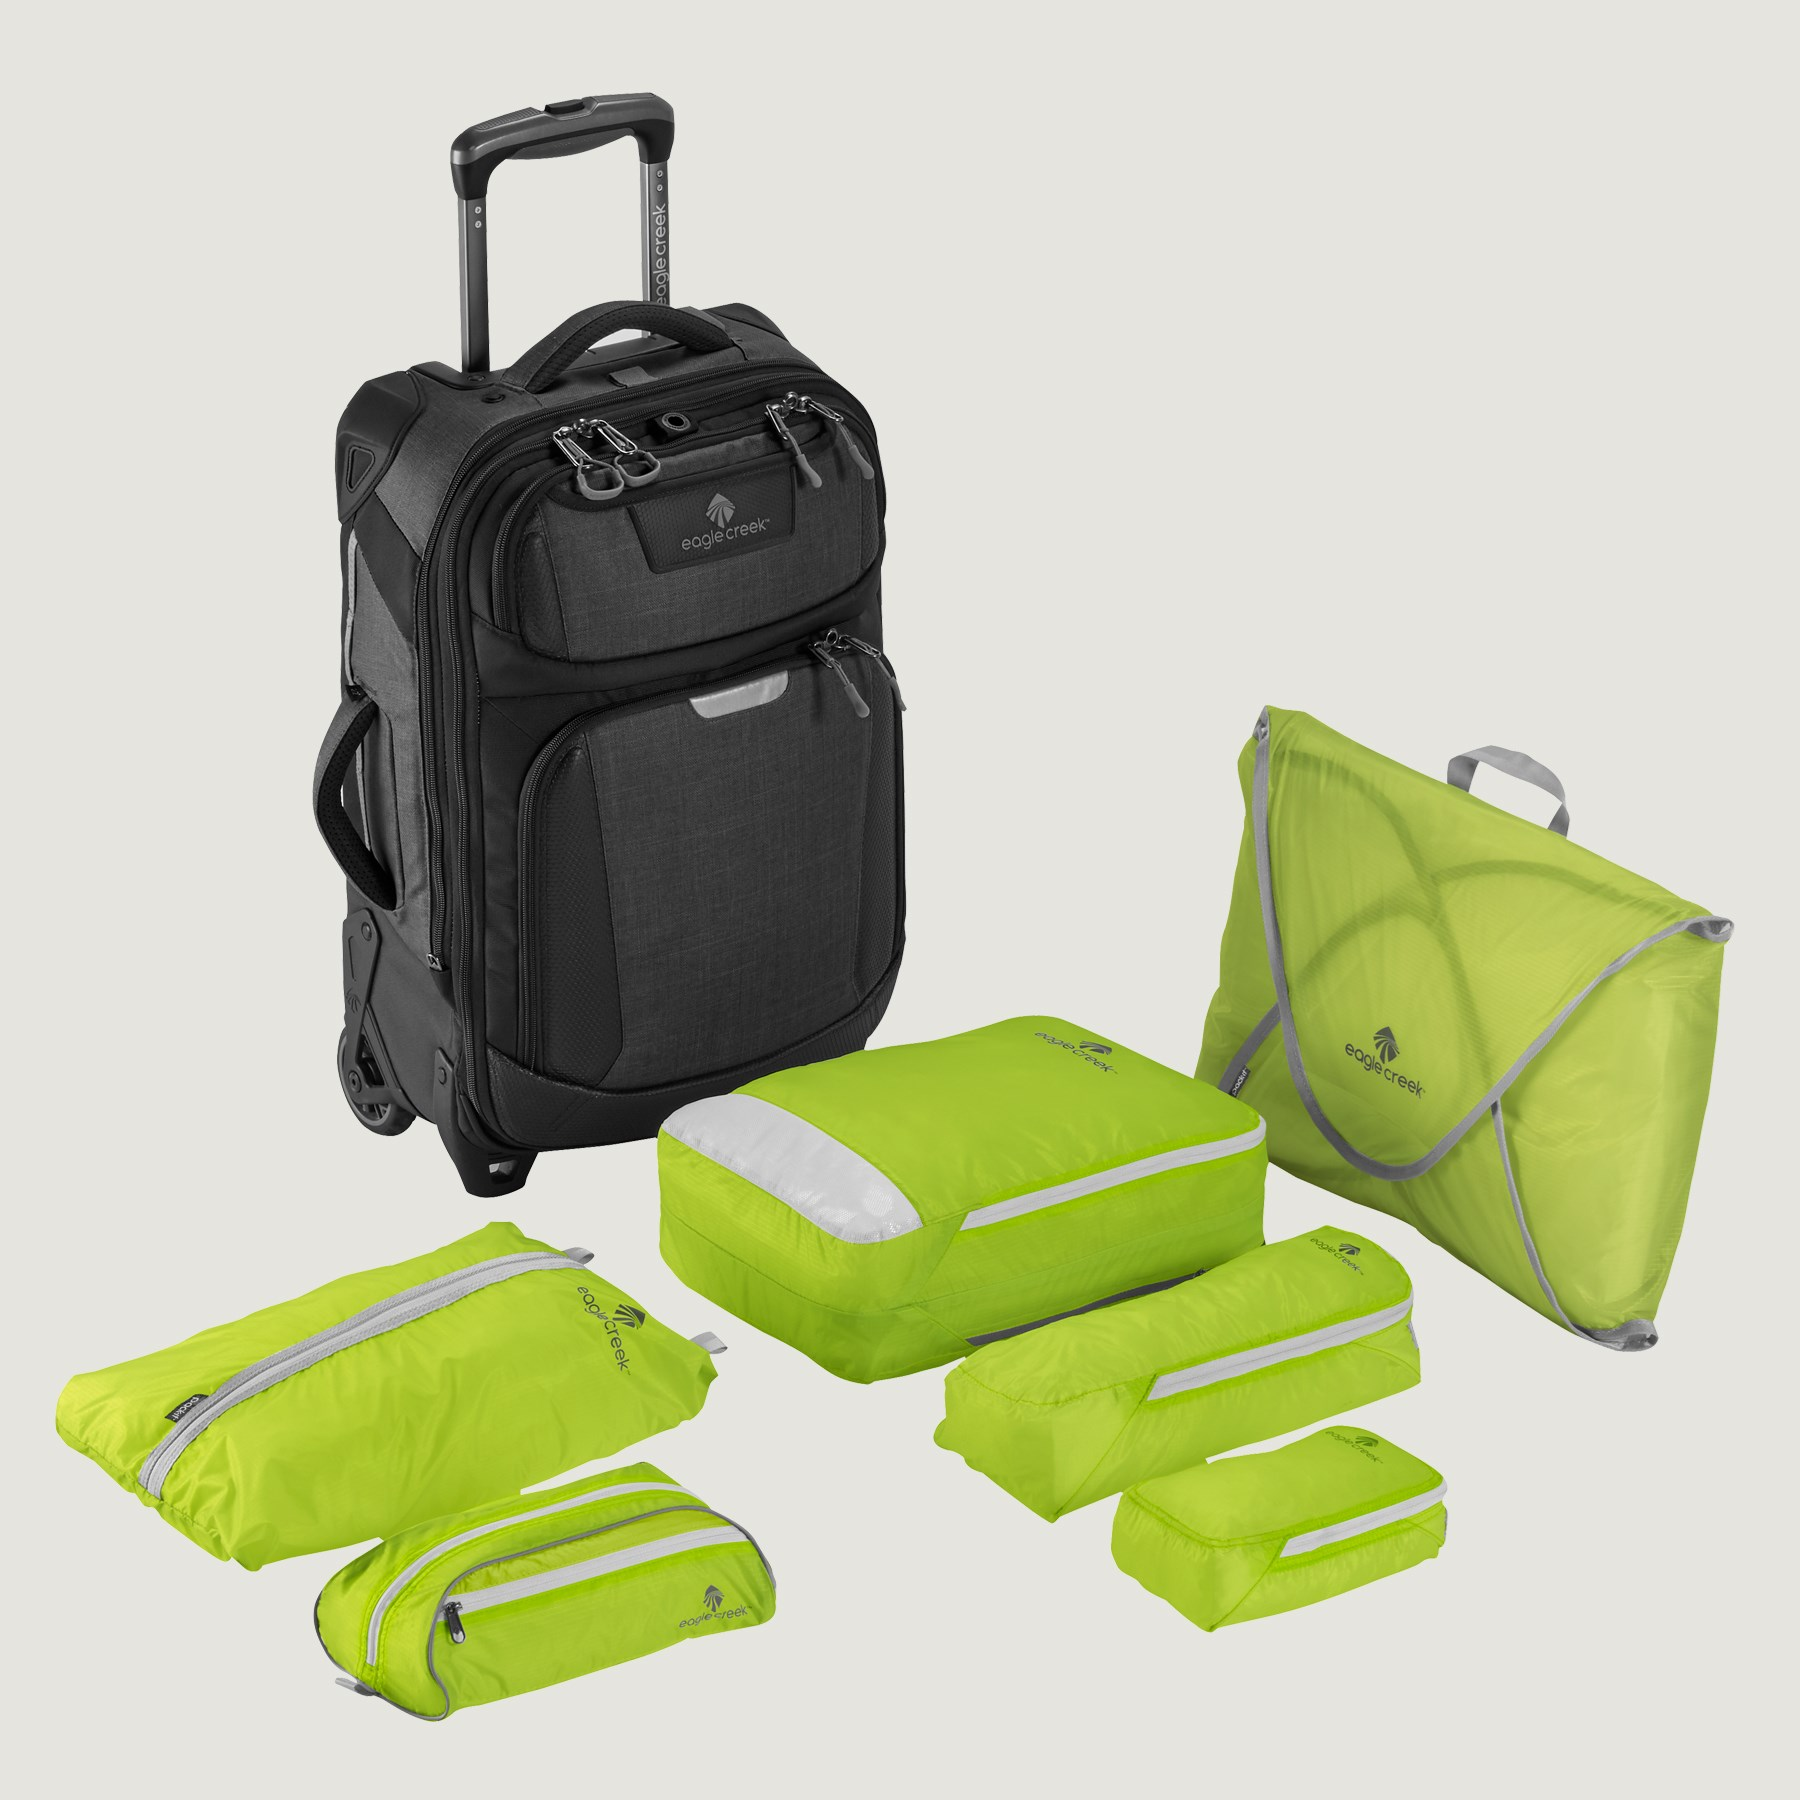 Eagle Creek Expanse Convertible Luggage and Gear Kit 2.jpg